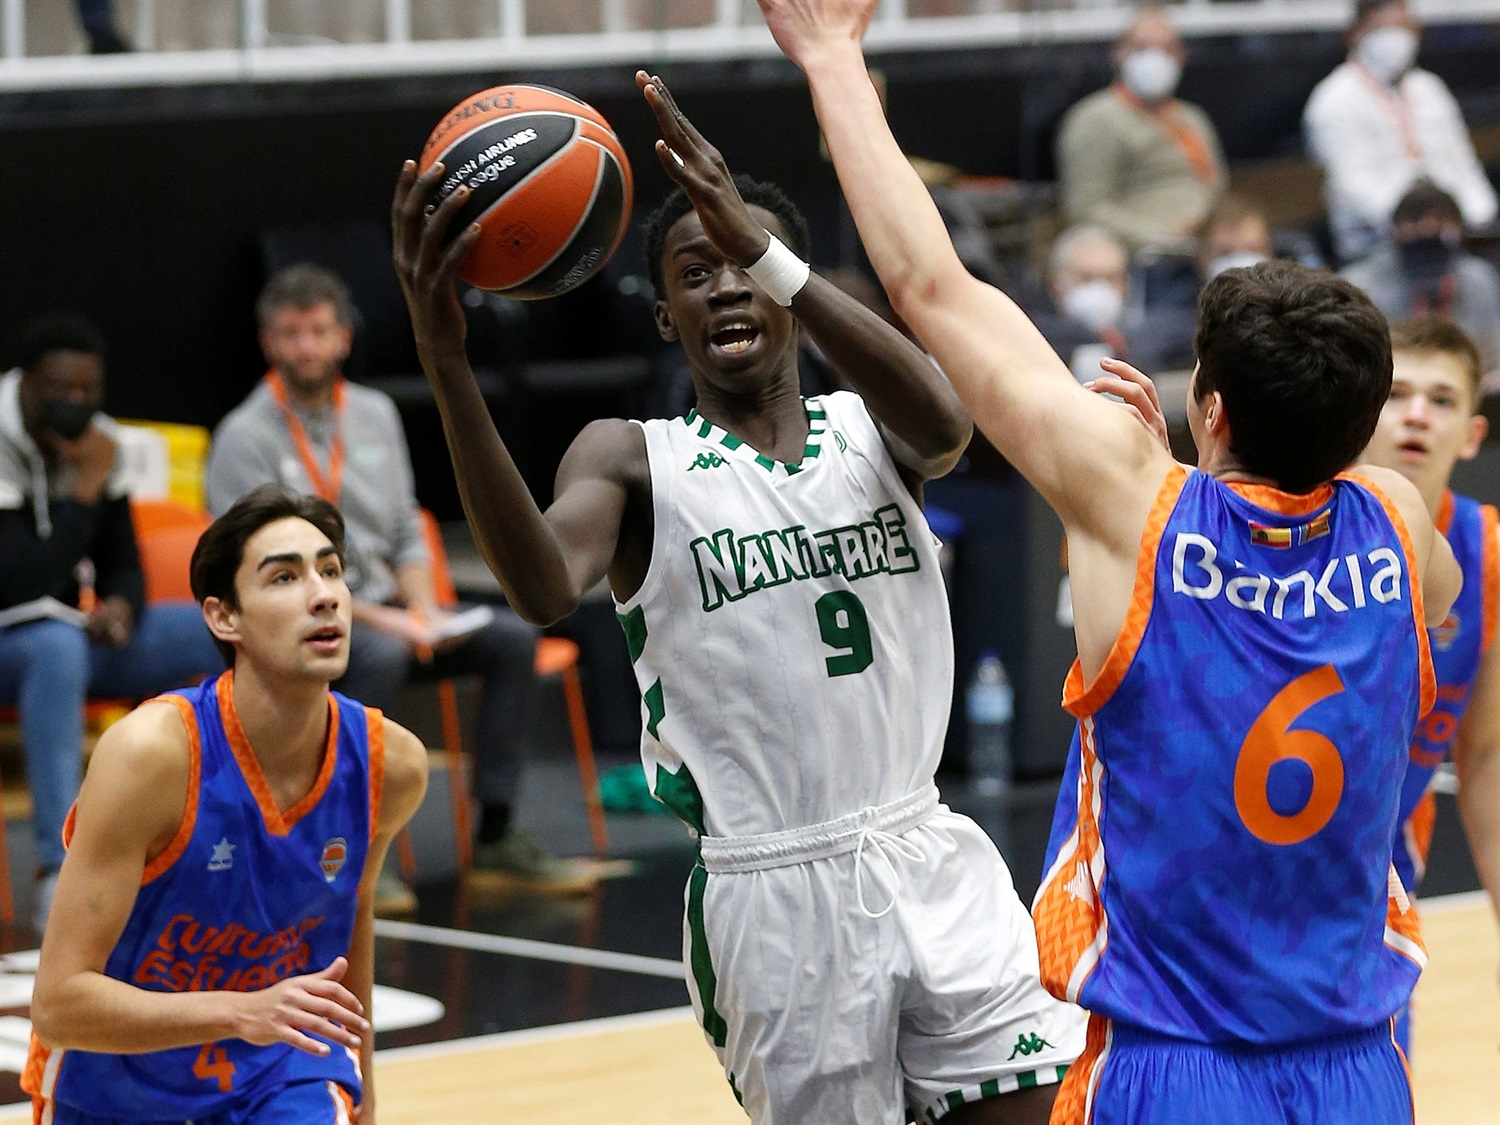 Amdy Moustapha Ndiaye - U18 Nanterre 92 (photo Miguel Angel Polo) - JT20